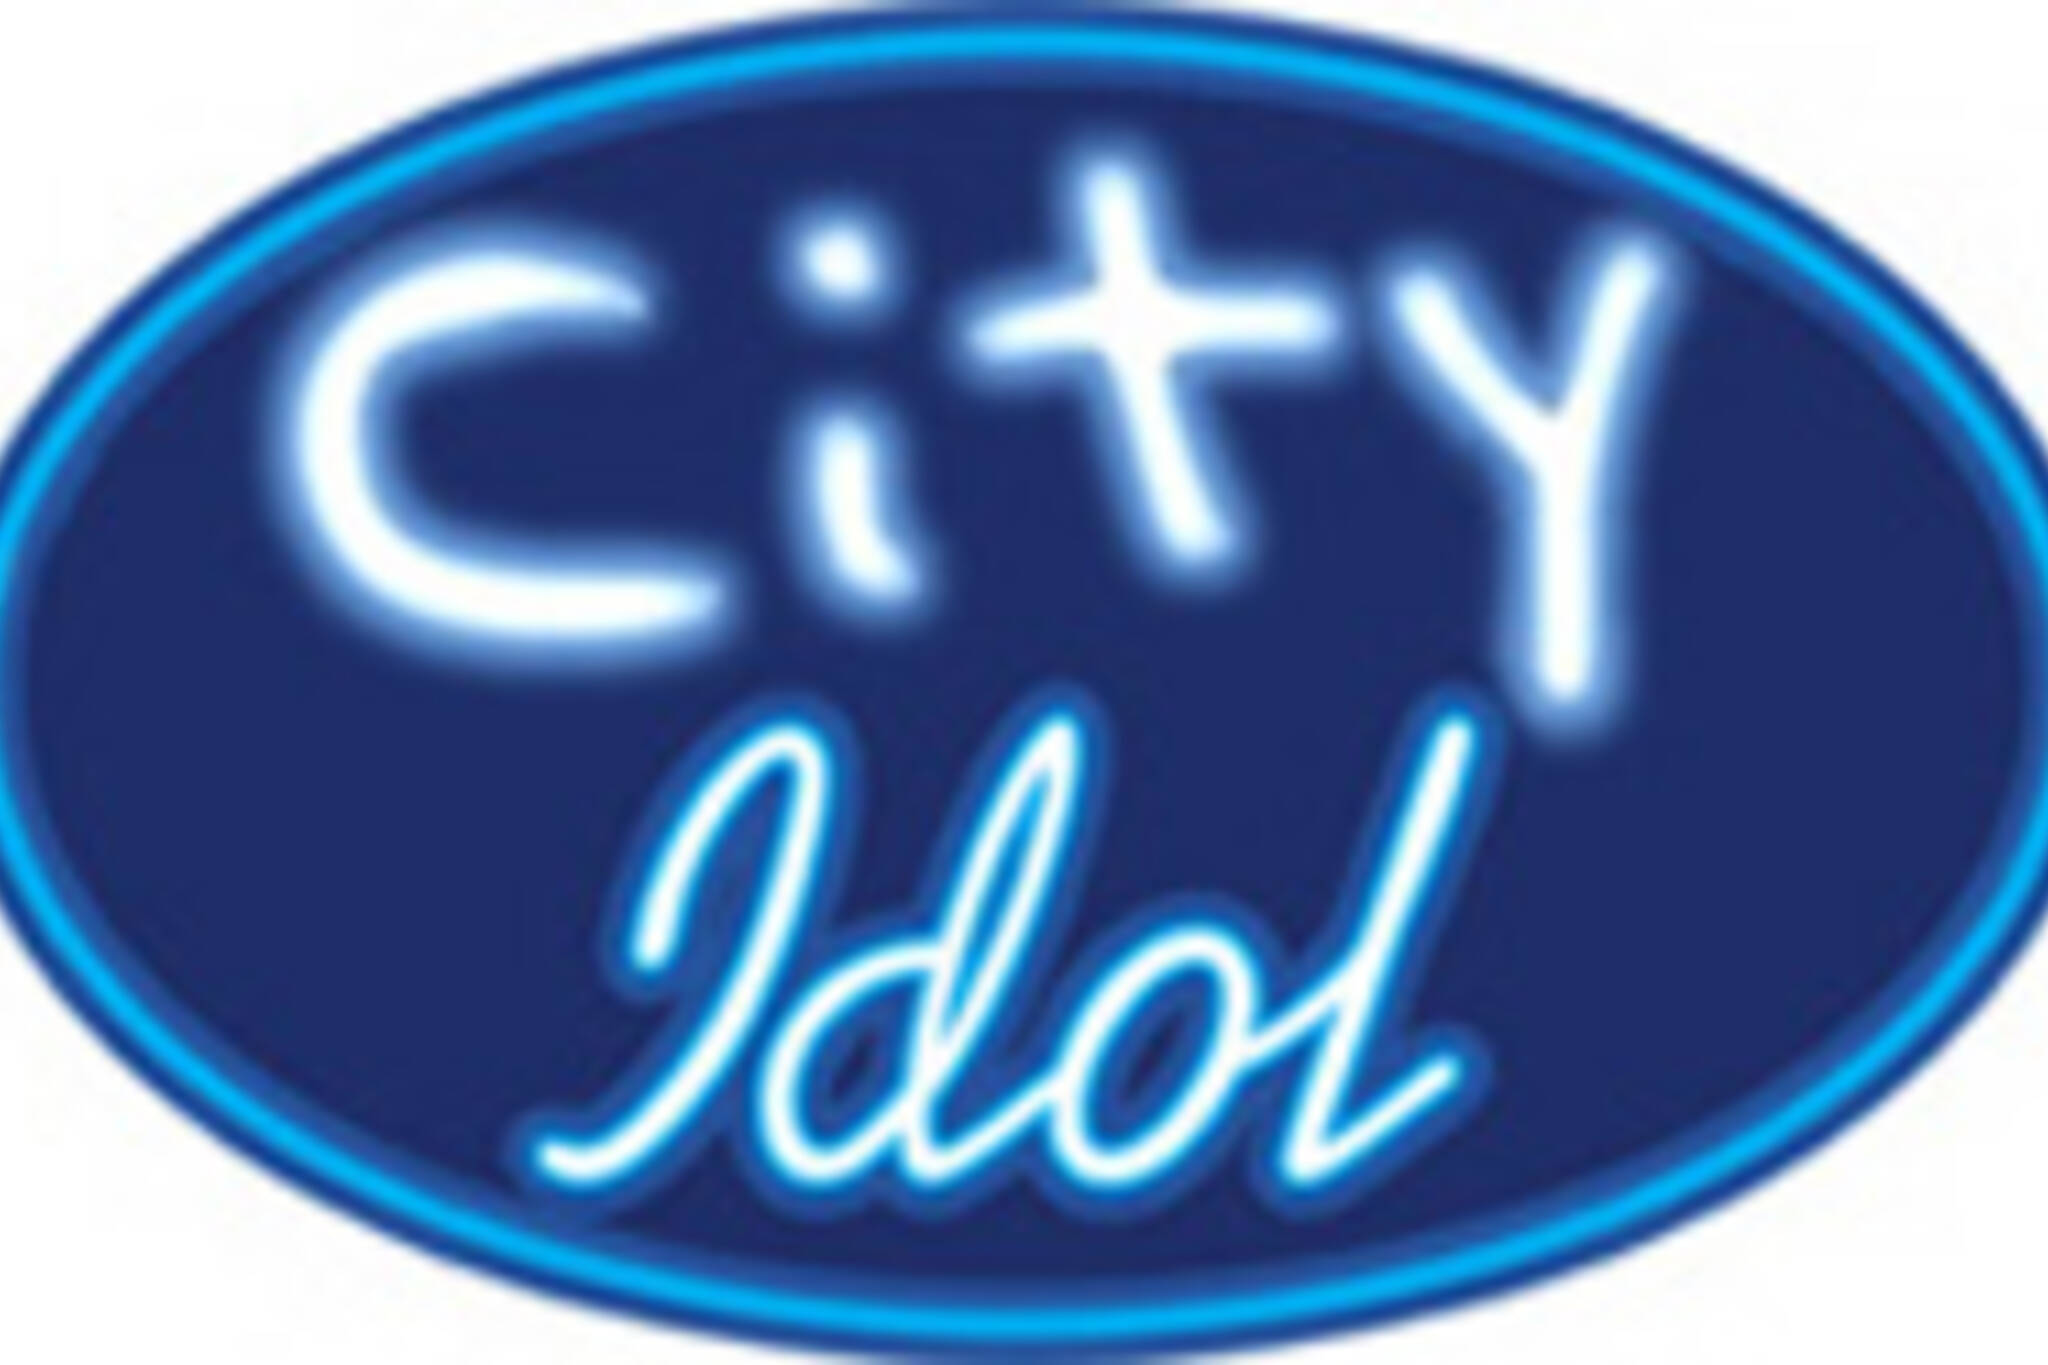 City Idol... will it take the city by storm? (image courtesy Dave Meslin/cityidol.to)